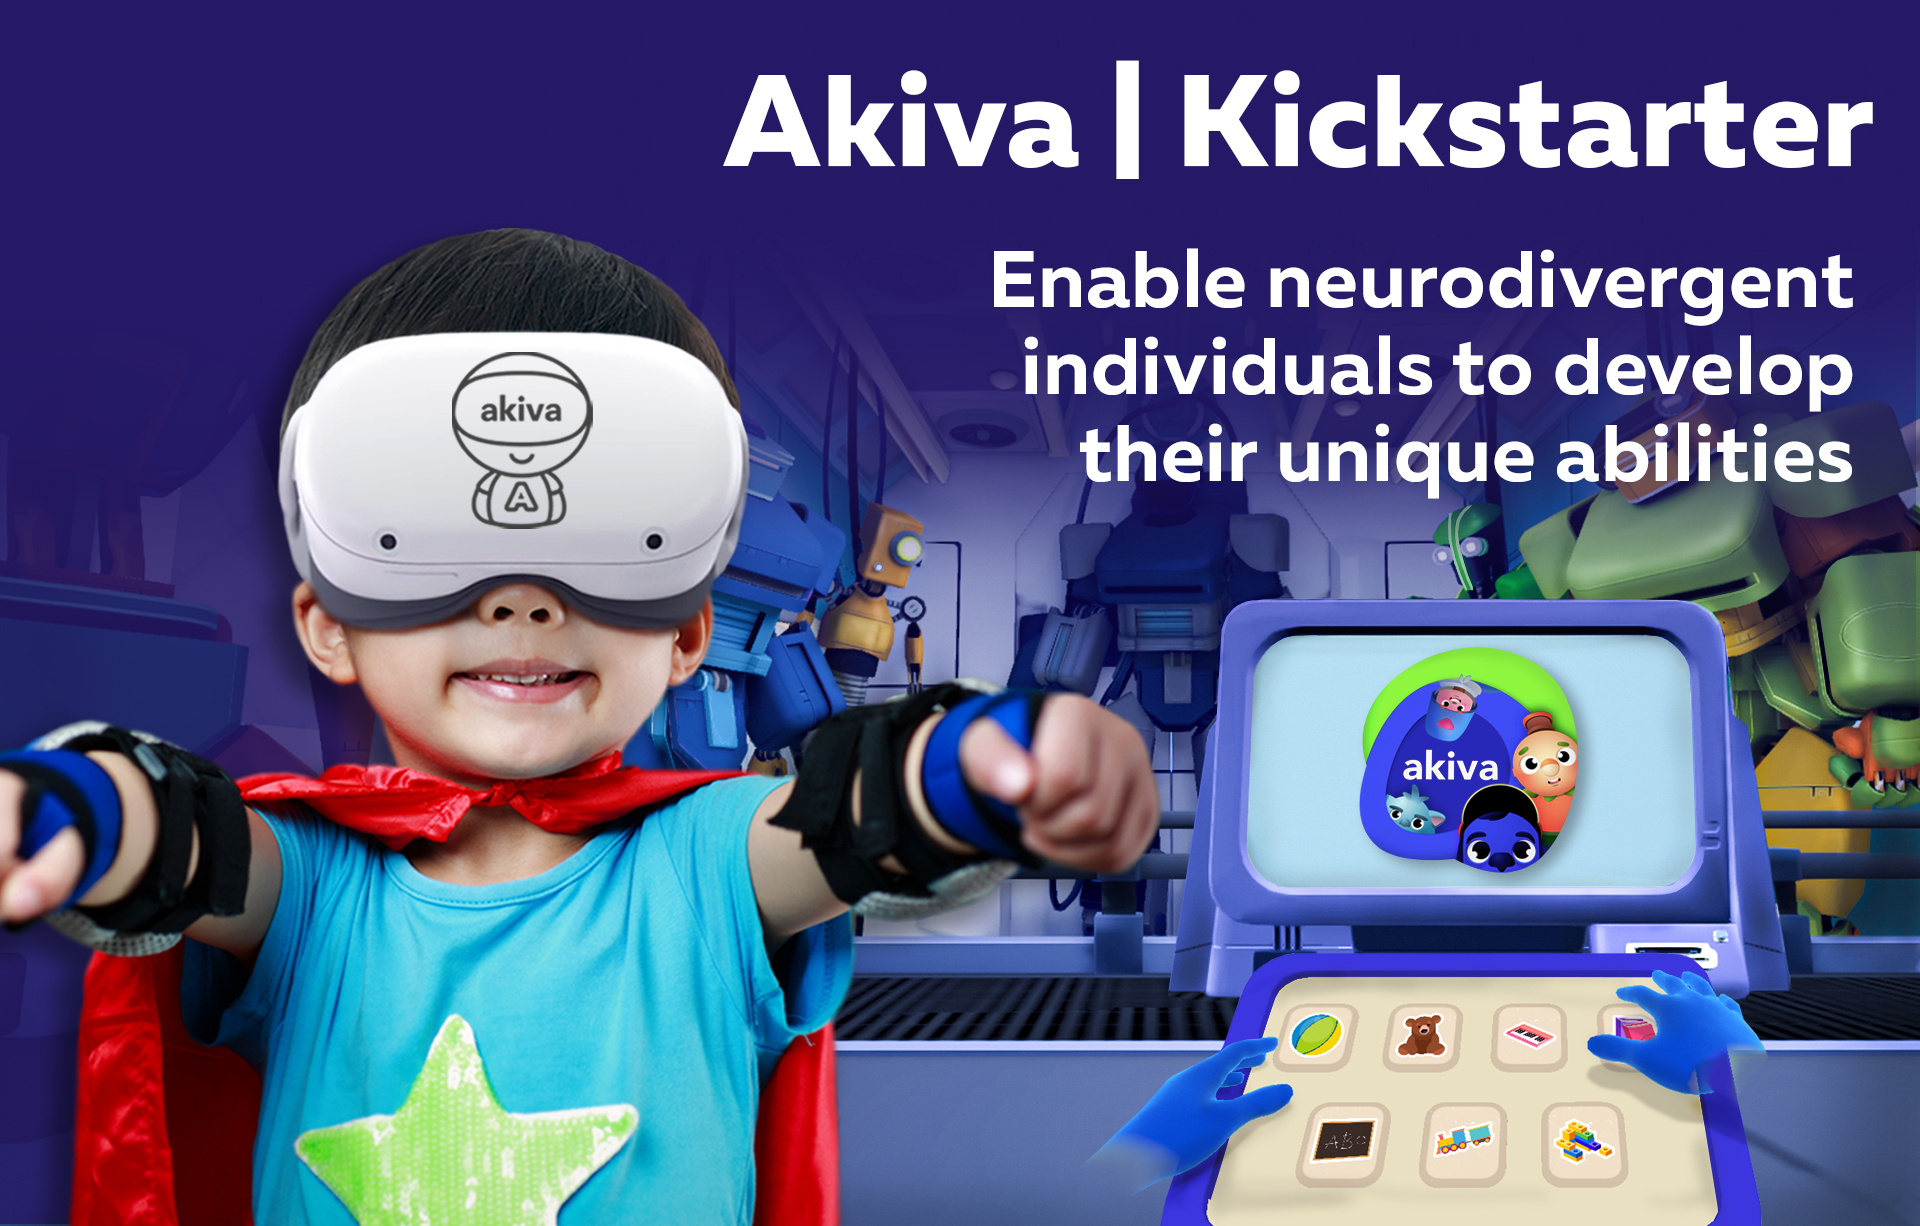 Akiva Systems Launches Kickstarter Campaign for Neurodivergent Individuals